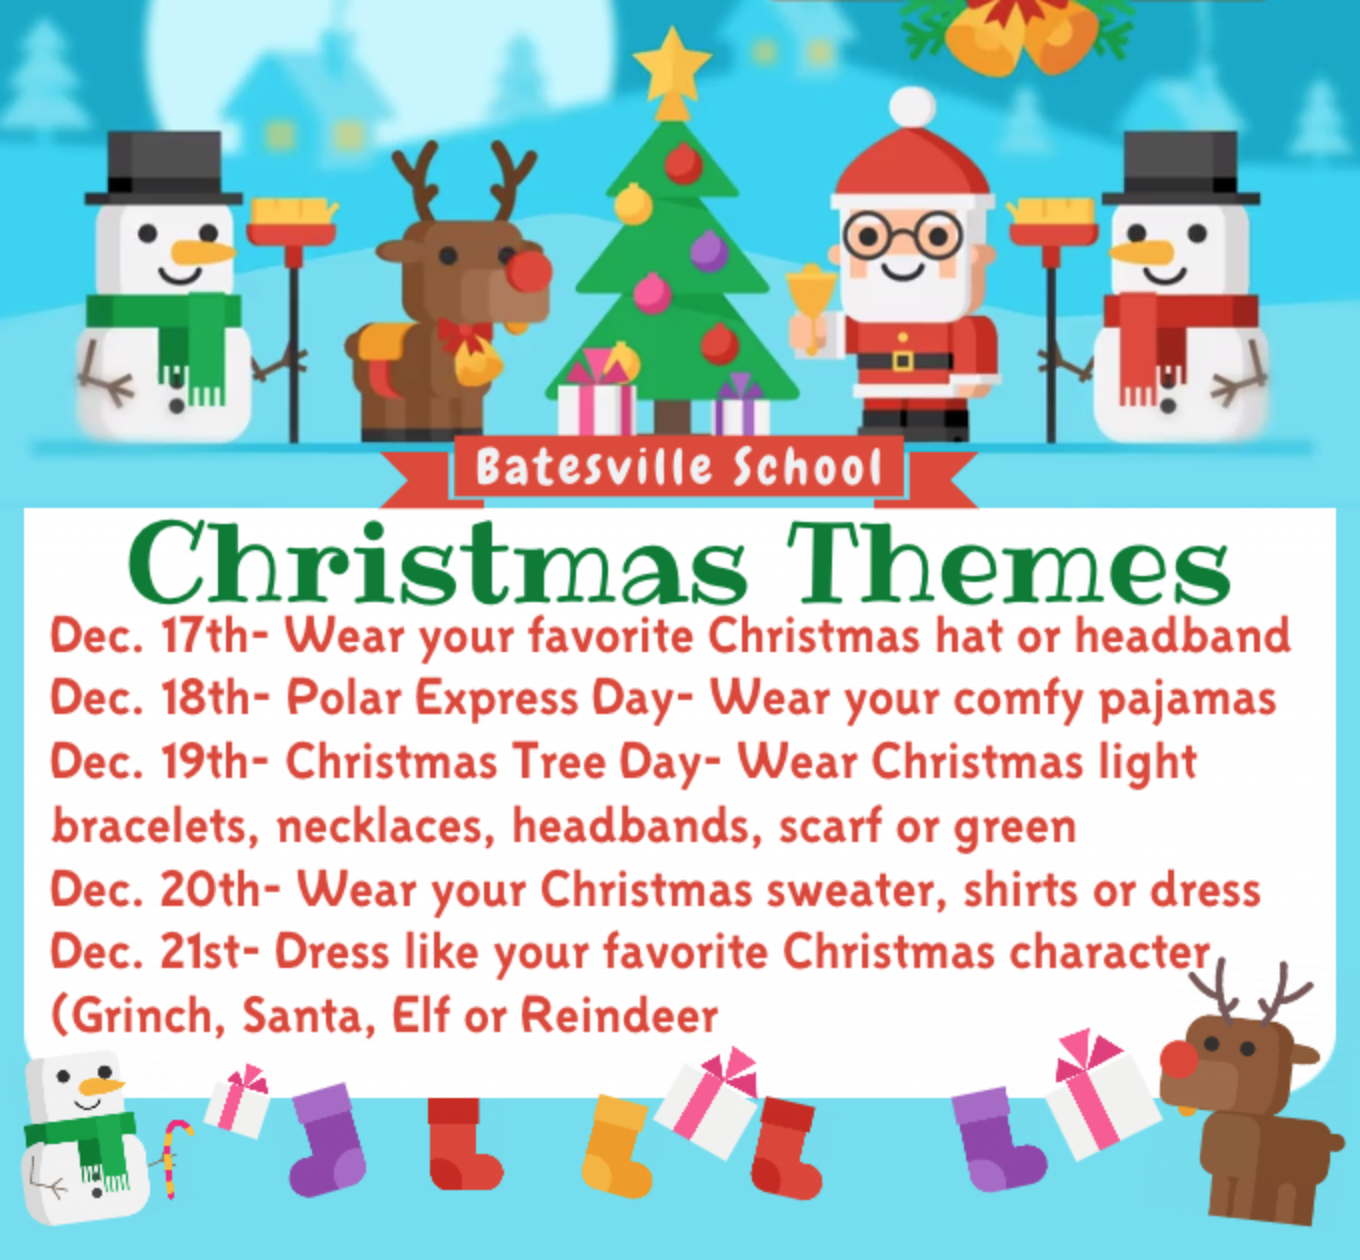 Batesville School Christmas Theme Week...Dec. 17th-21st!